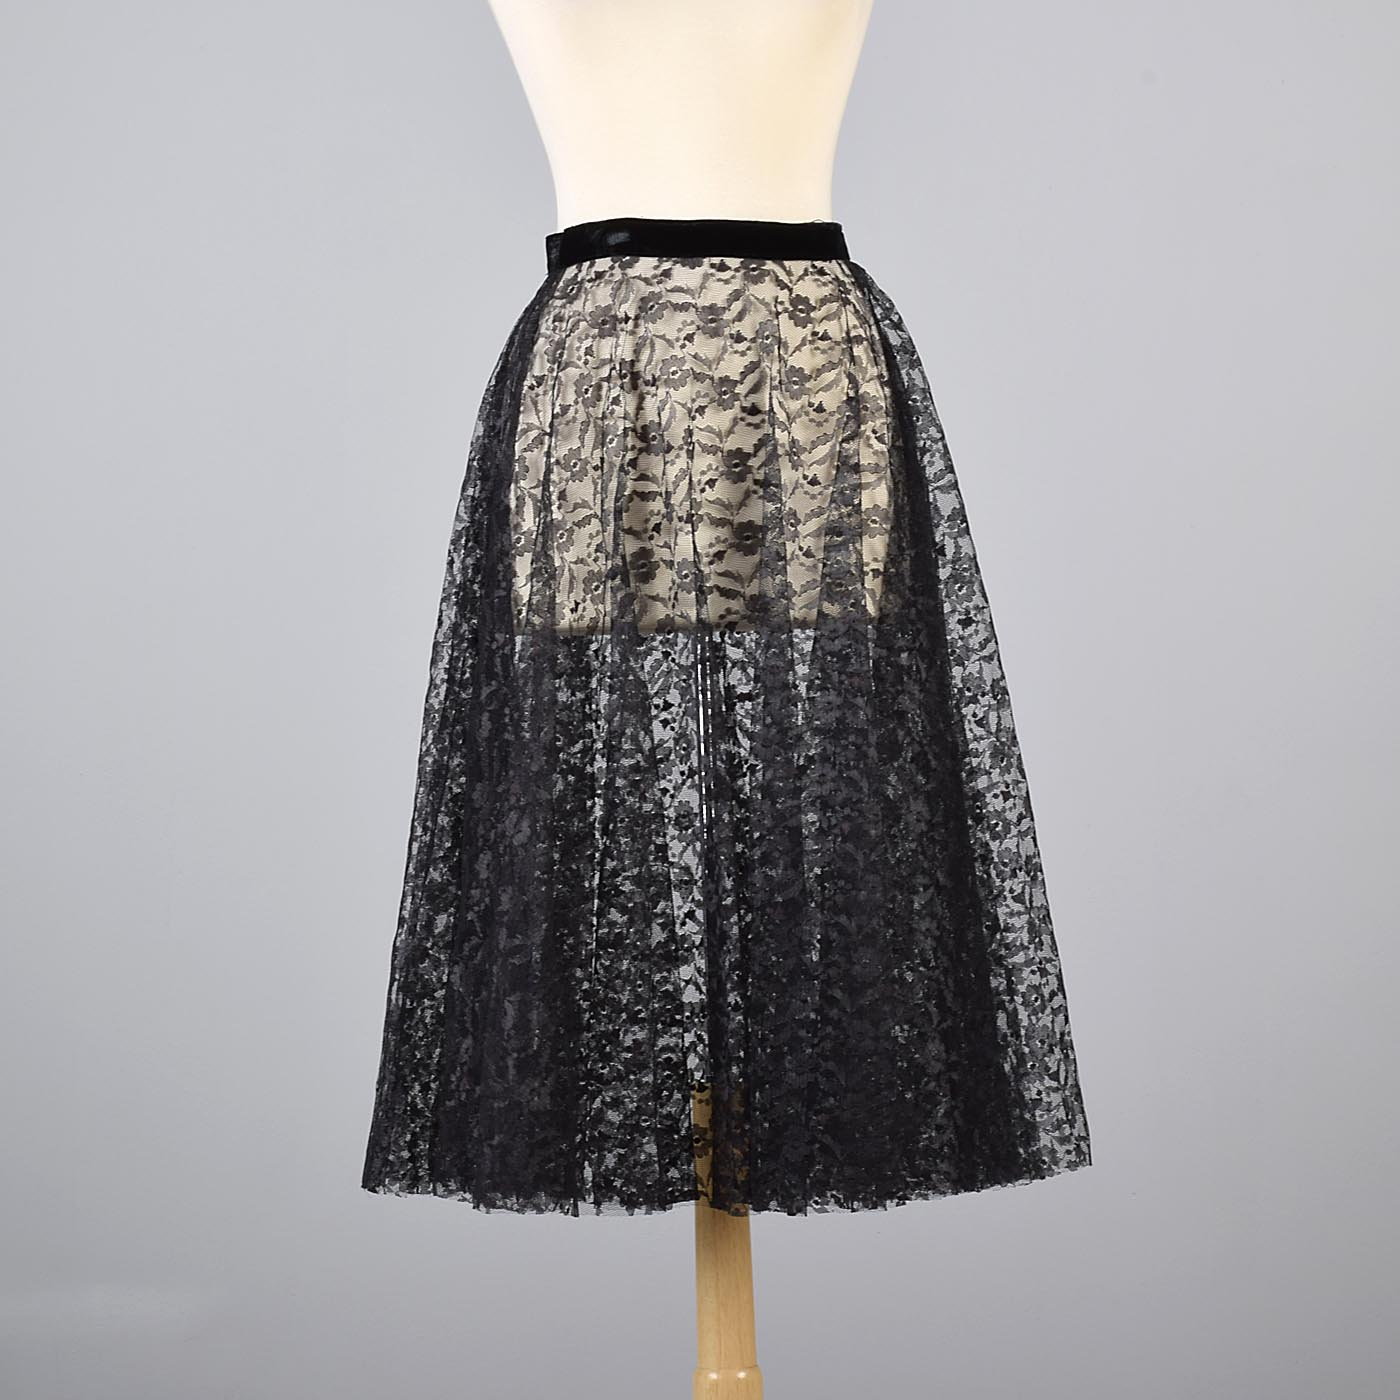 50s Lace Rockabilly Circle Skirt Swing Pinup Skirt L XL by  SMART SET Sportswear Black and Brown Lace Overlay Over White Satin